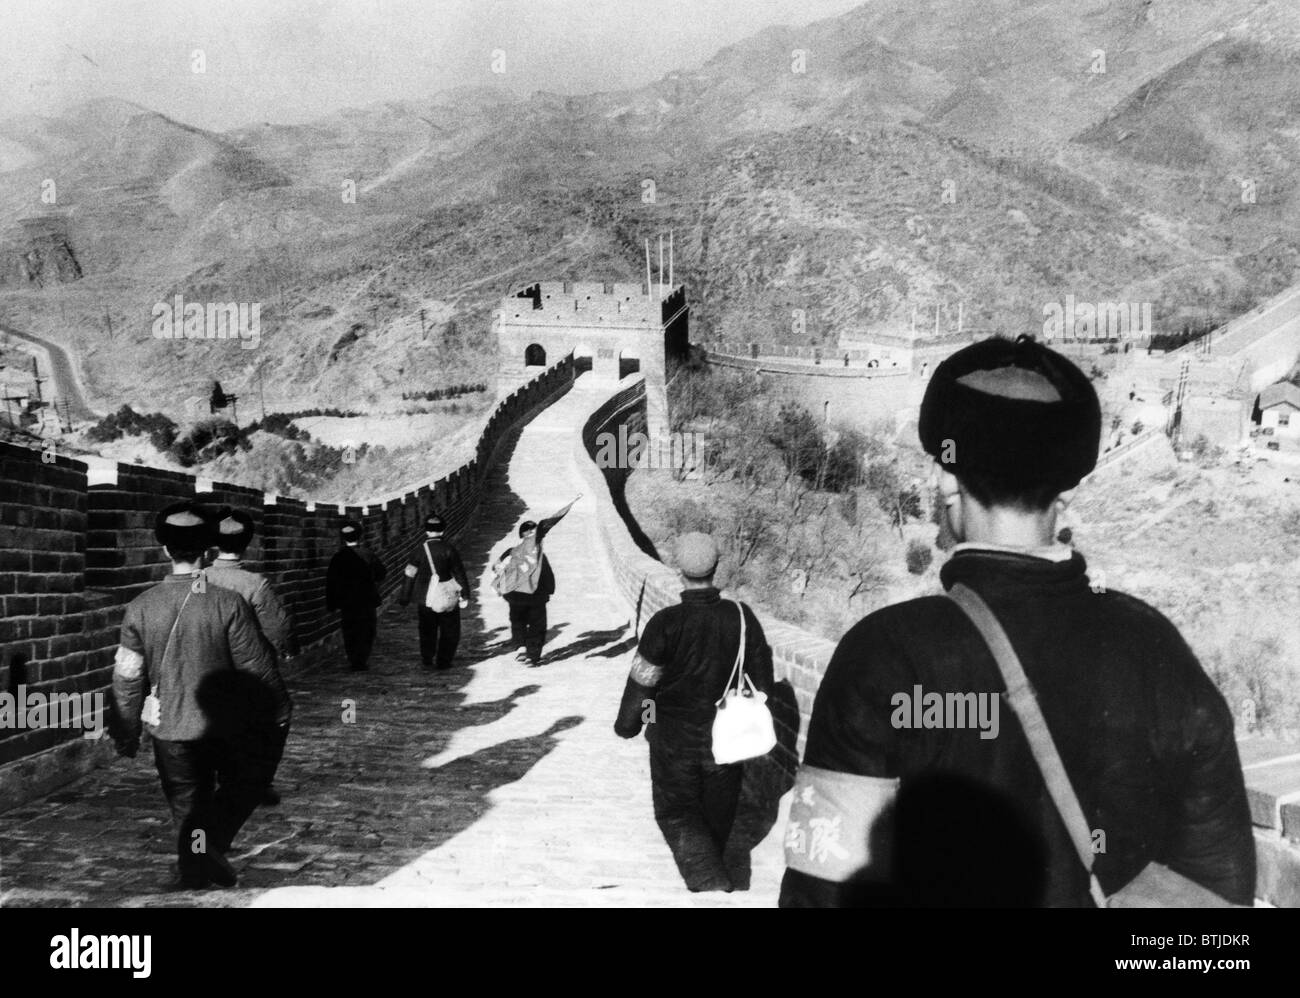 Members of Mao Tse-tung's Red Guard pause at the Great Wall on their way to Peking from rural areas, 1967. Courtesy: Stock Photo